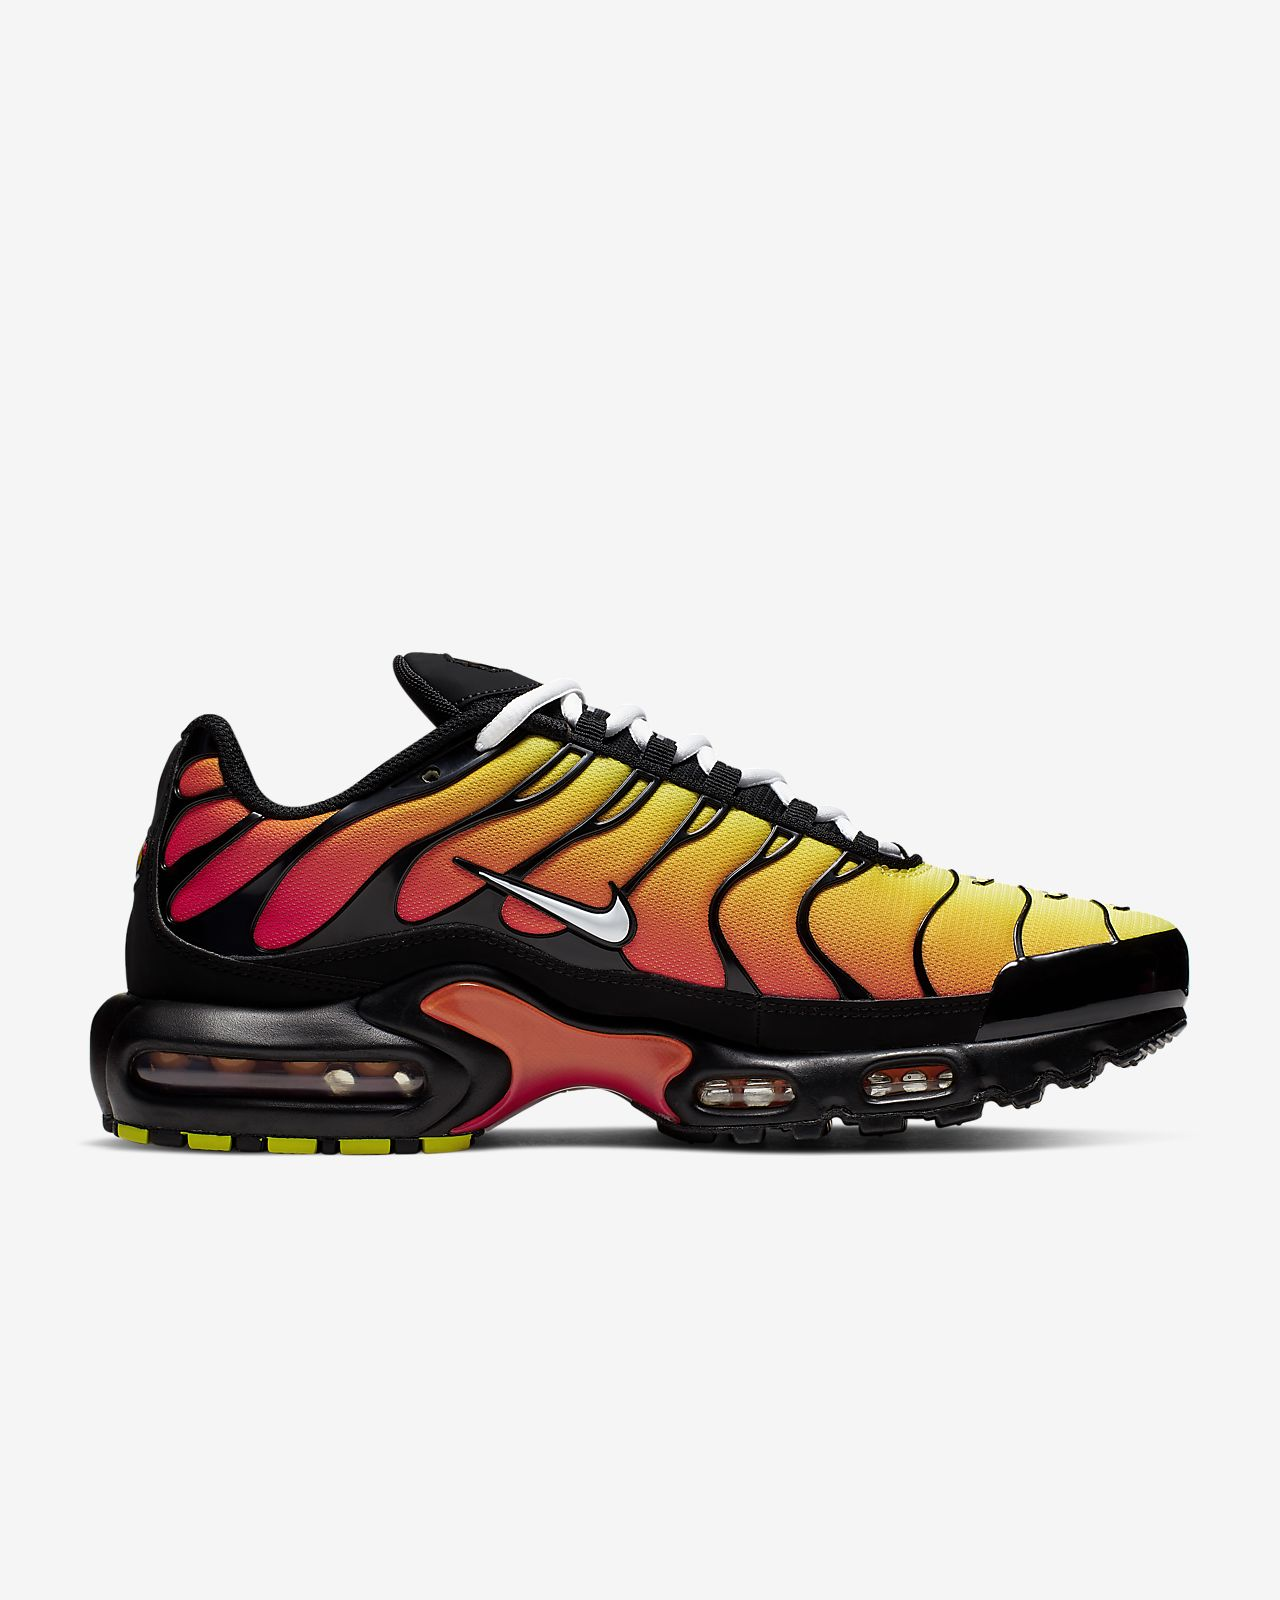 55137981492 Nike Air Max Plus Men's Shoe